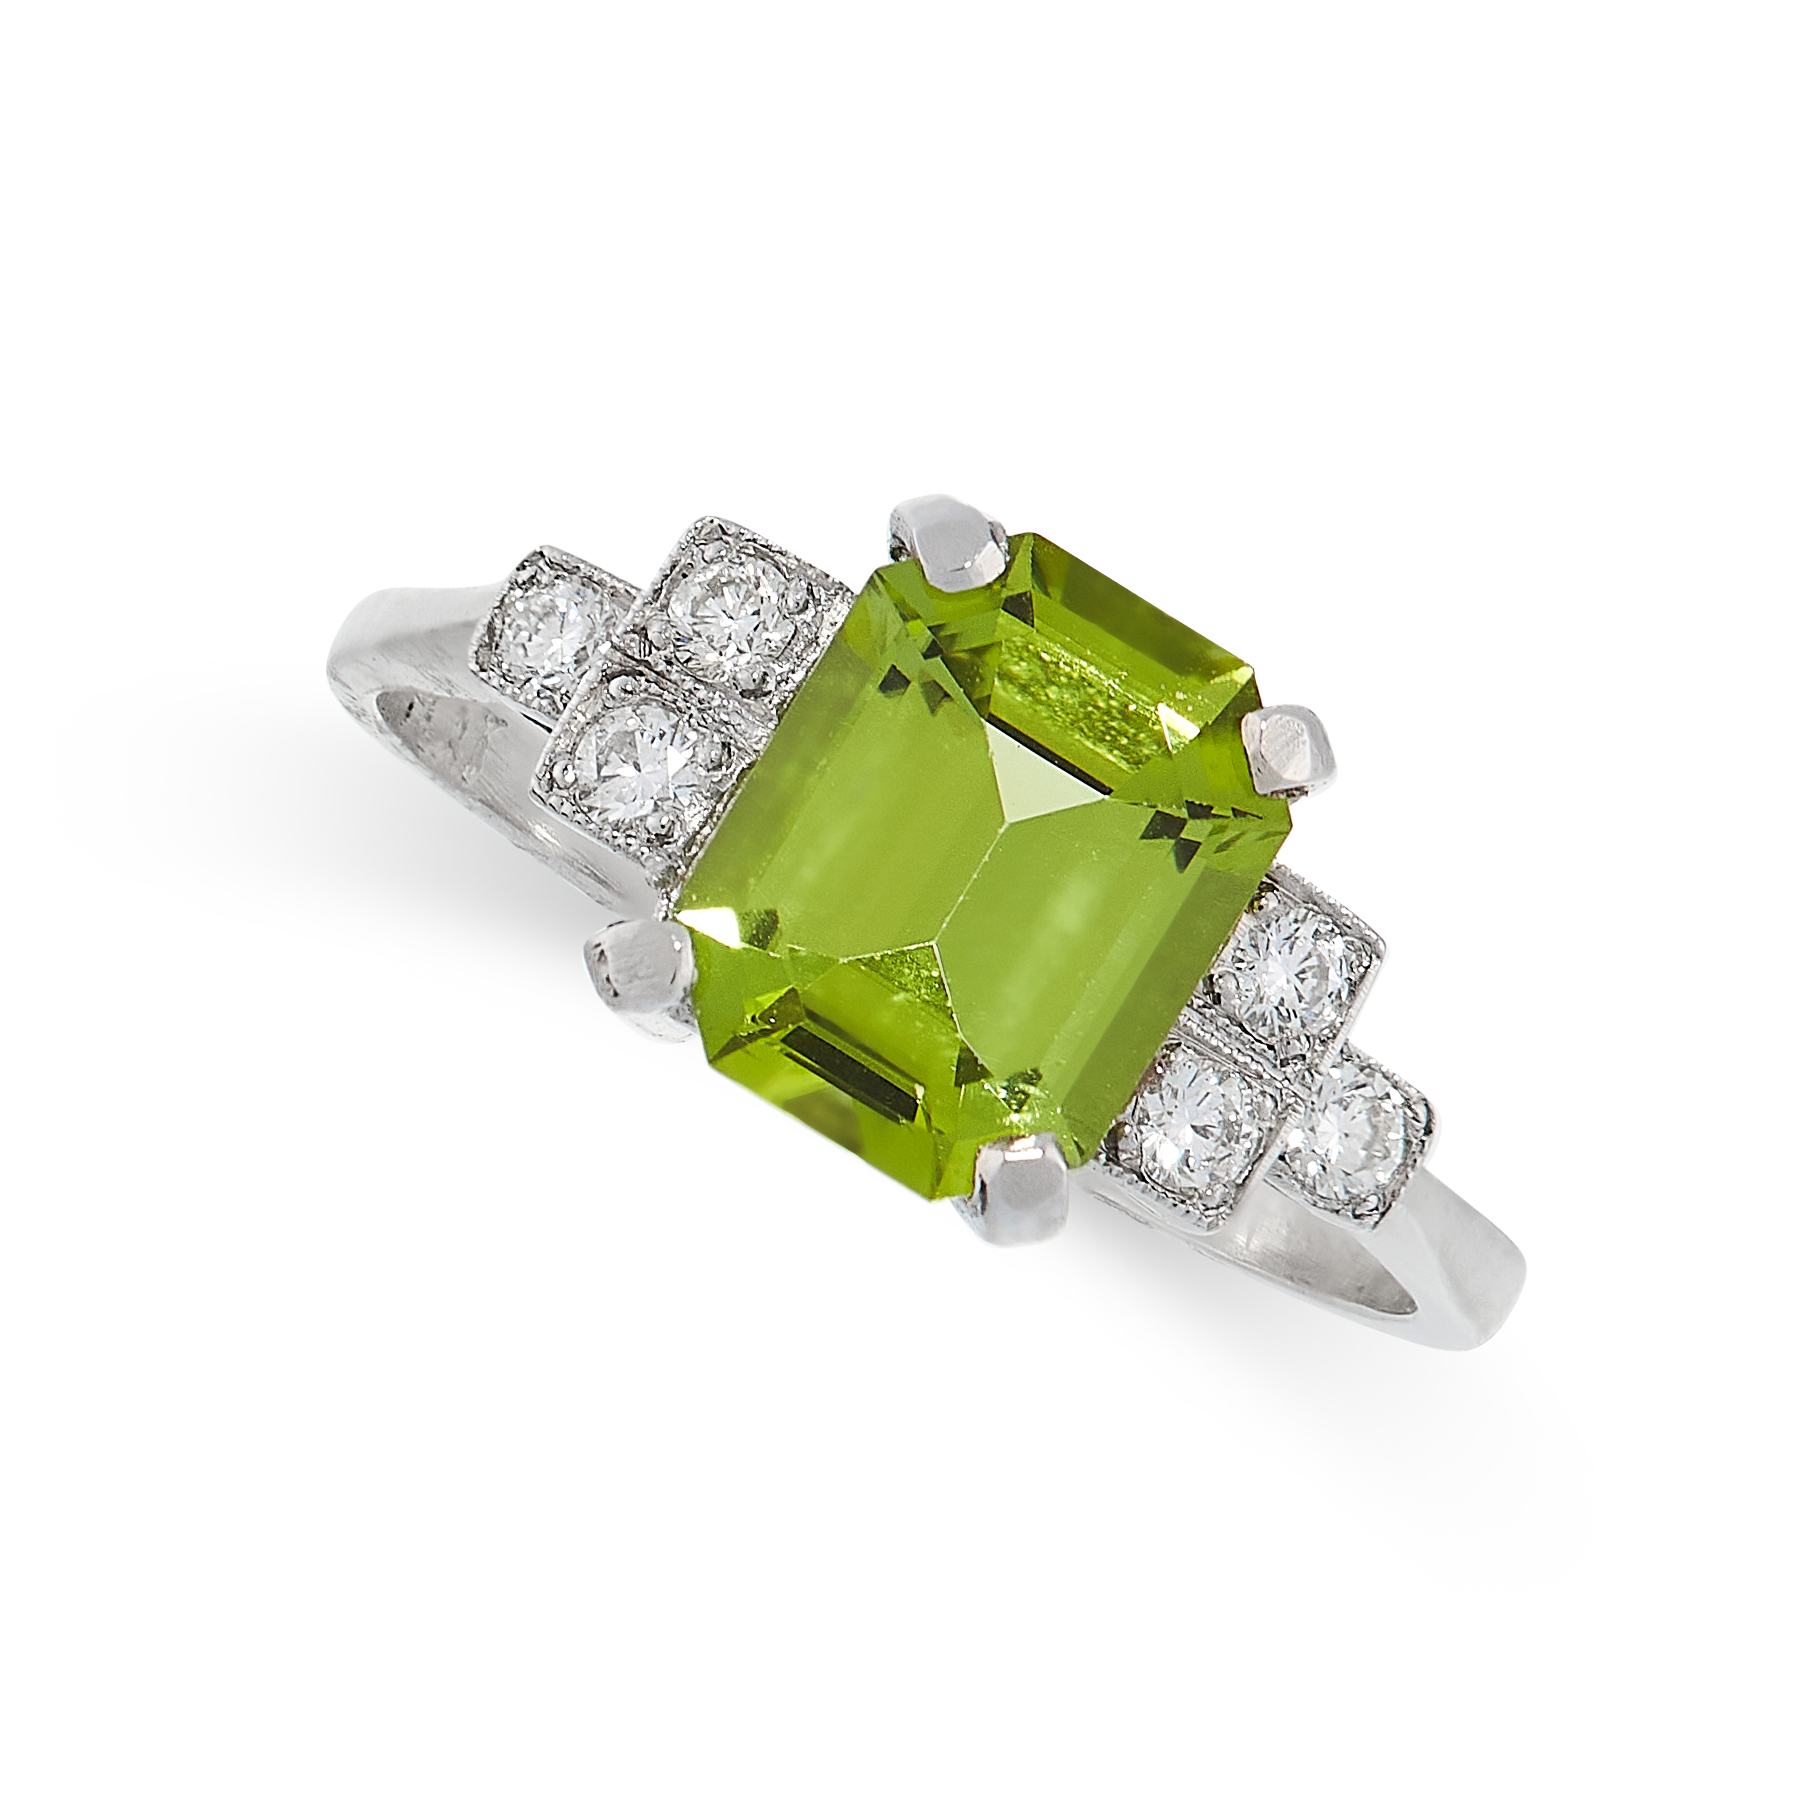 PERIDOT AND DIAMOND RING in platinum set with an emerald cut peridot, accented by trios of round cut